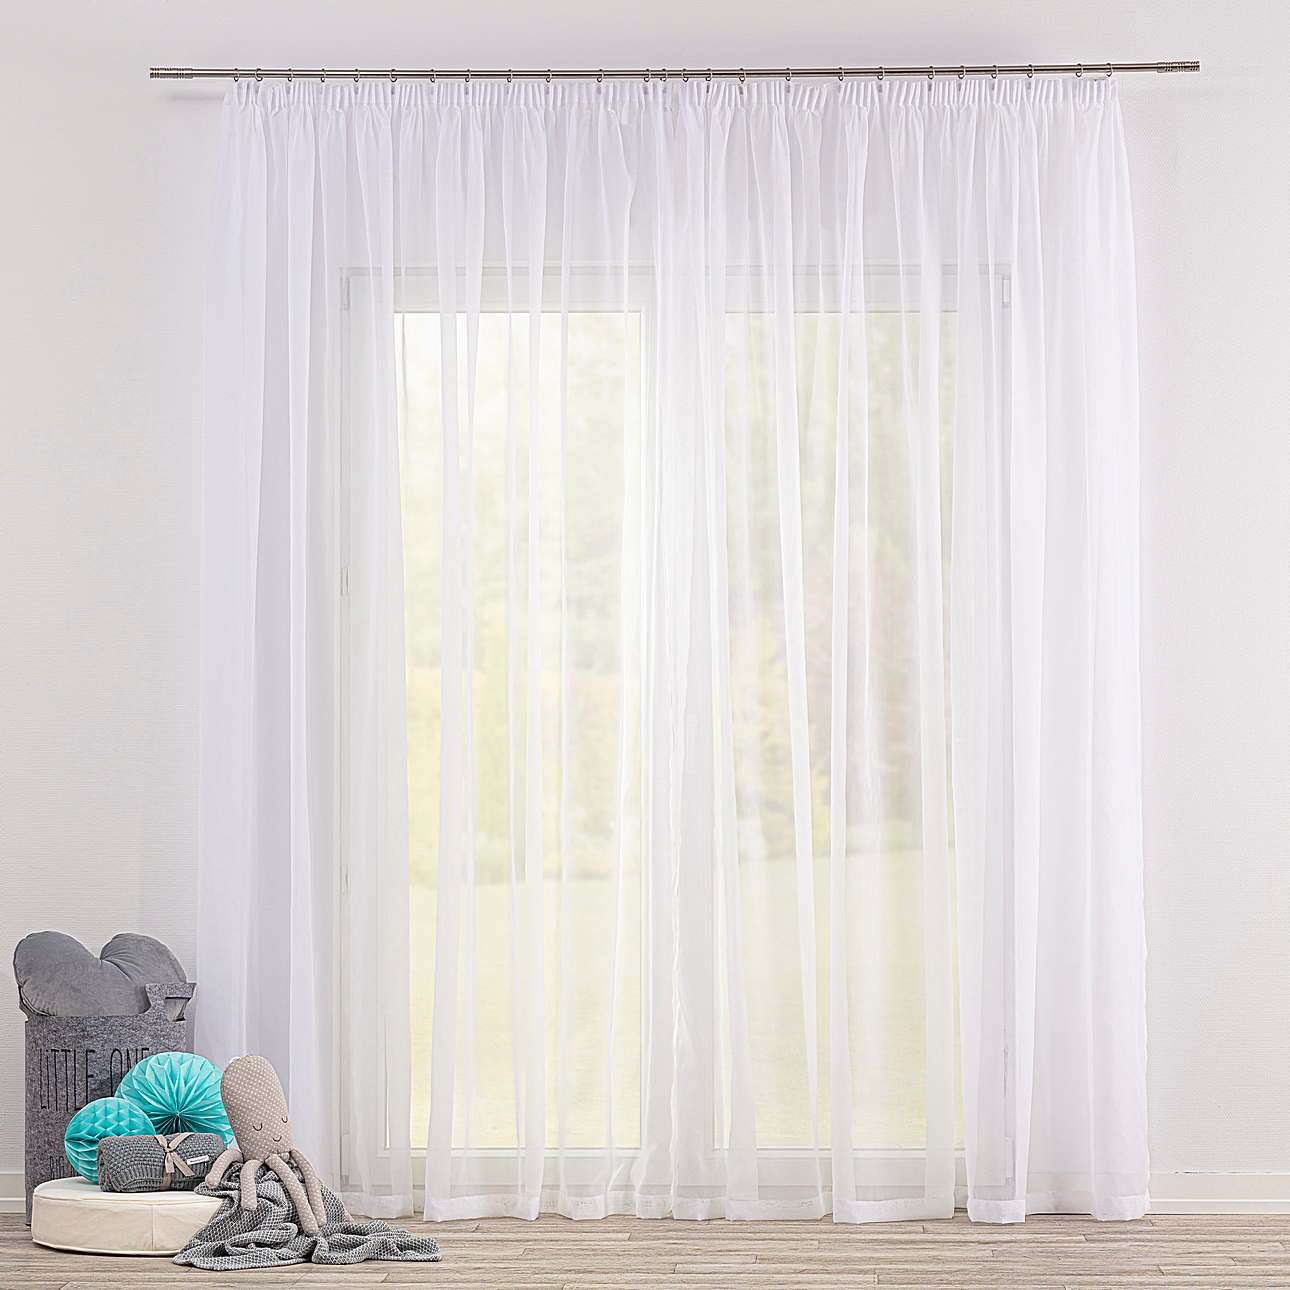 Pencil pleat voile/net curtain in collection Soft Veil, fabric: 900-00